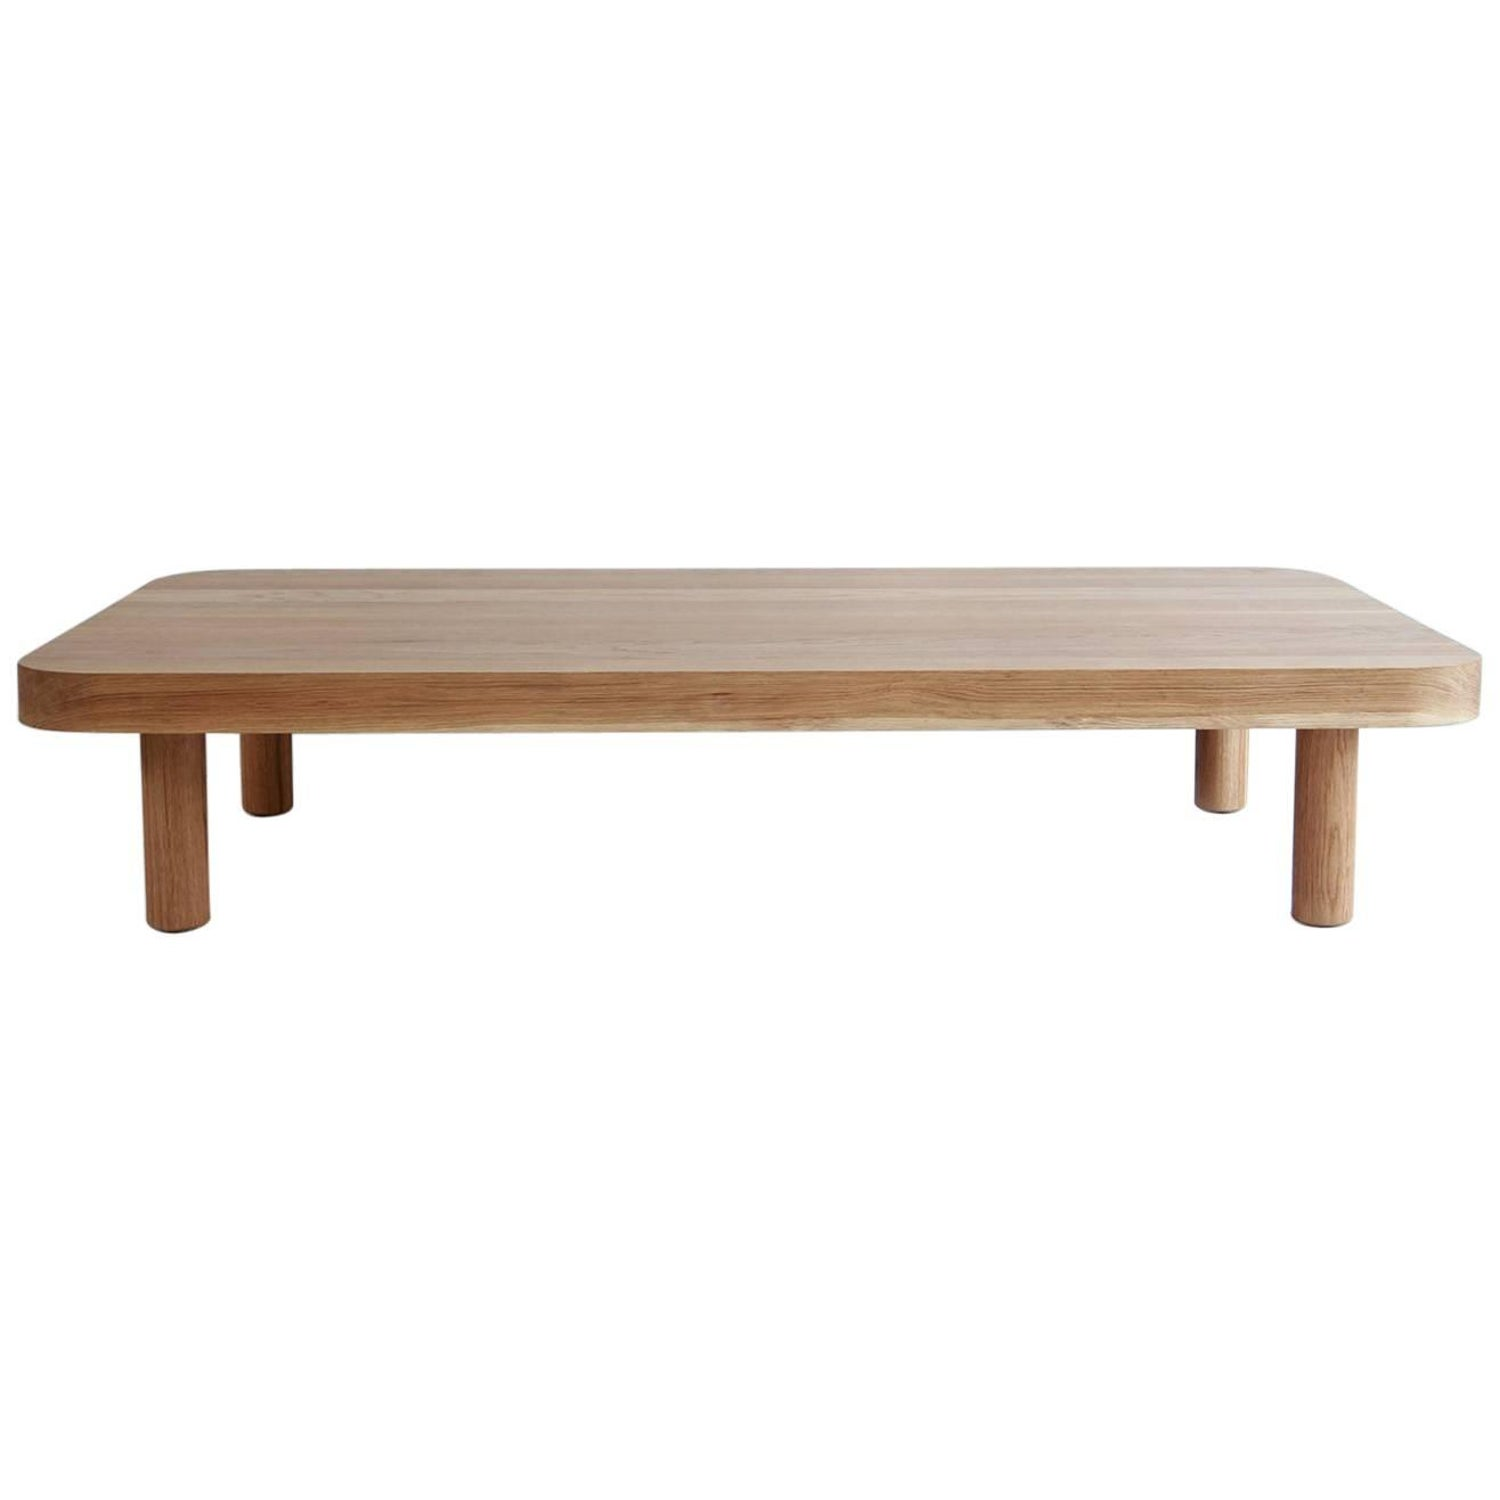 Nickey Kehoe Collection Rectangular Radius Coffee Table For Sale